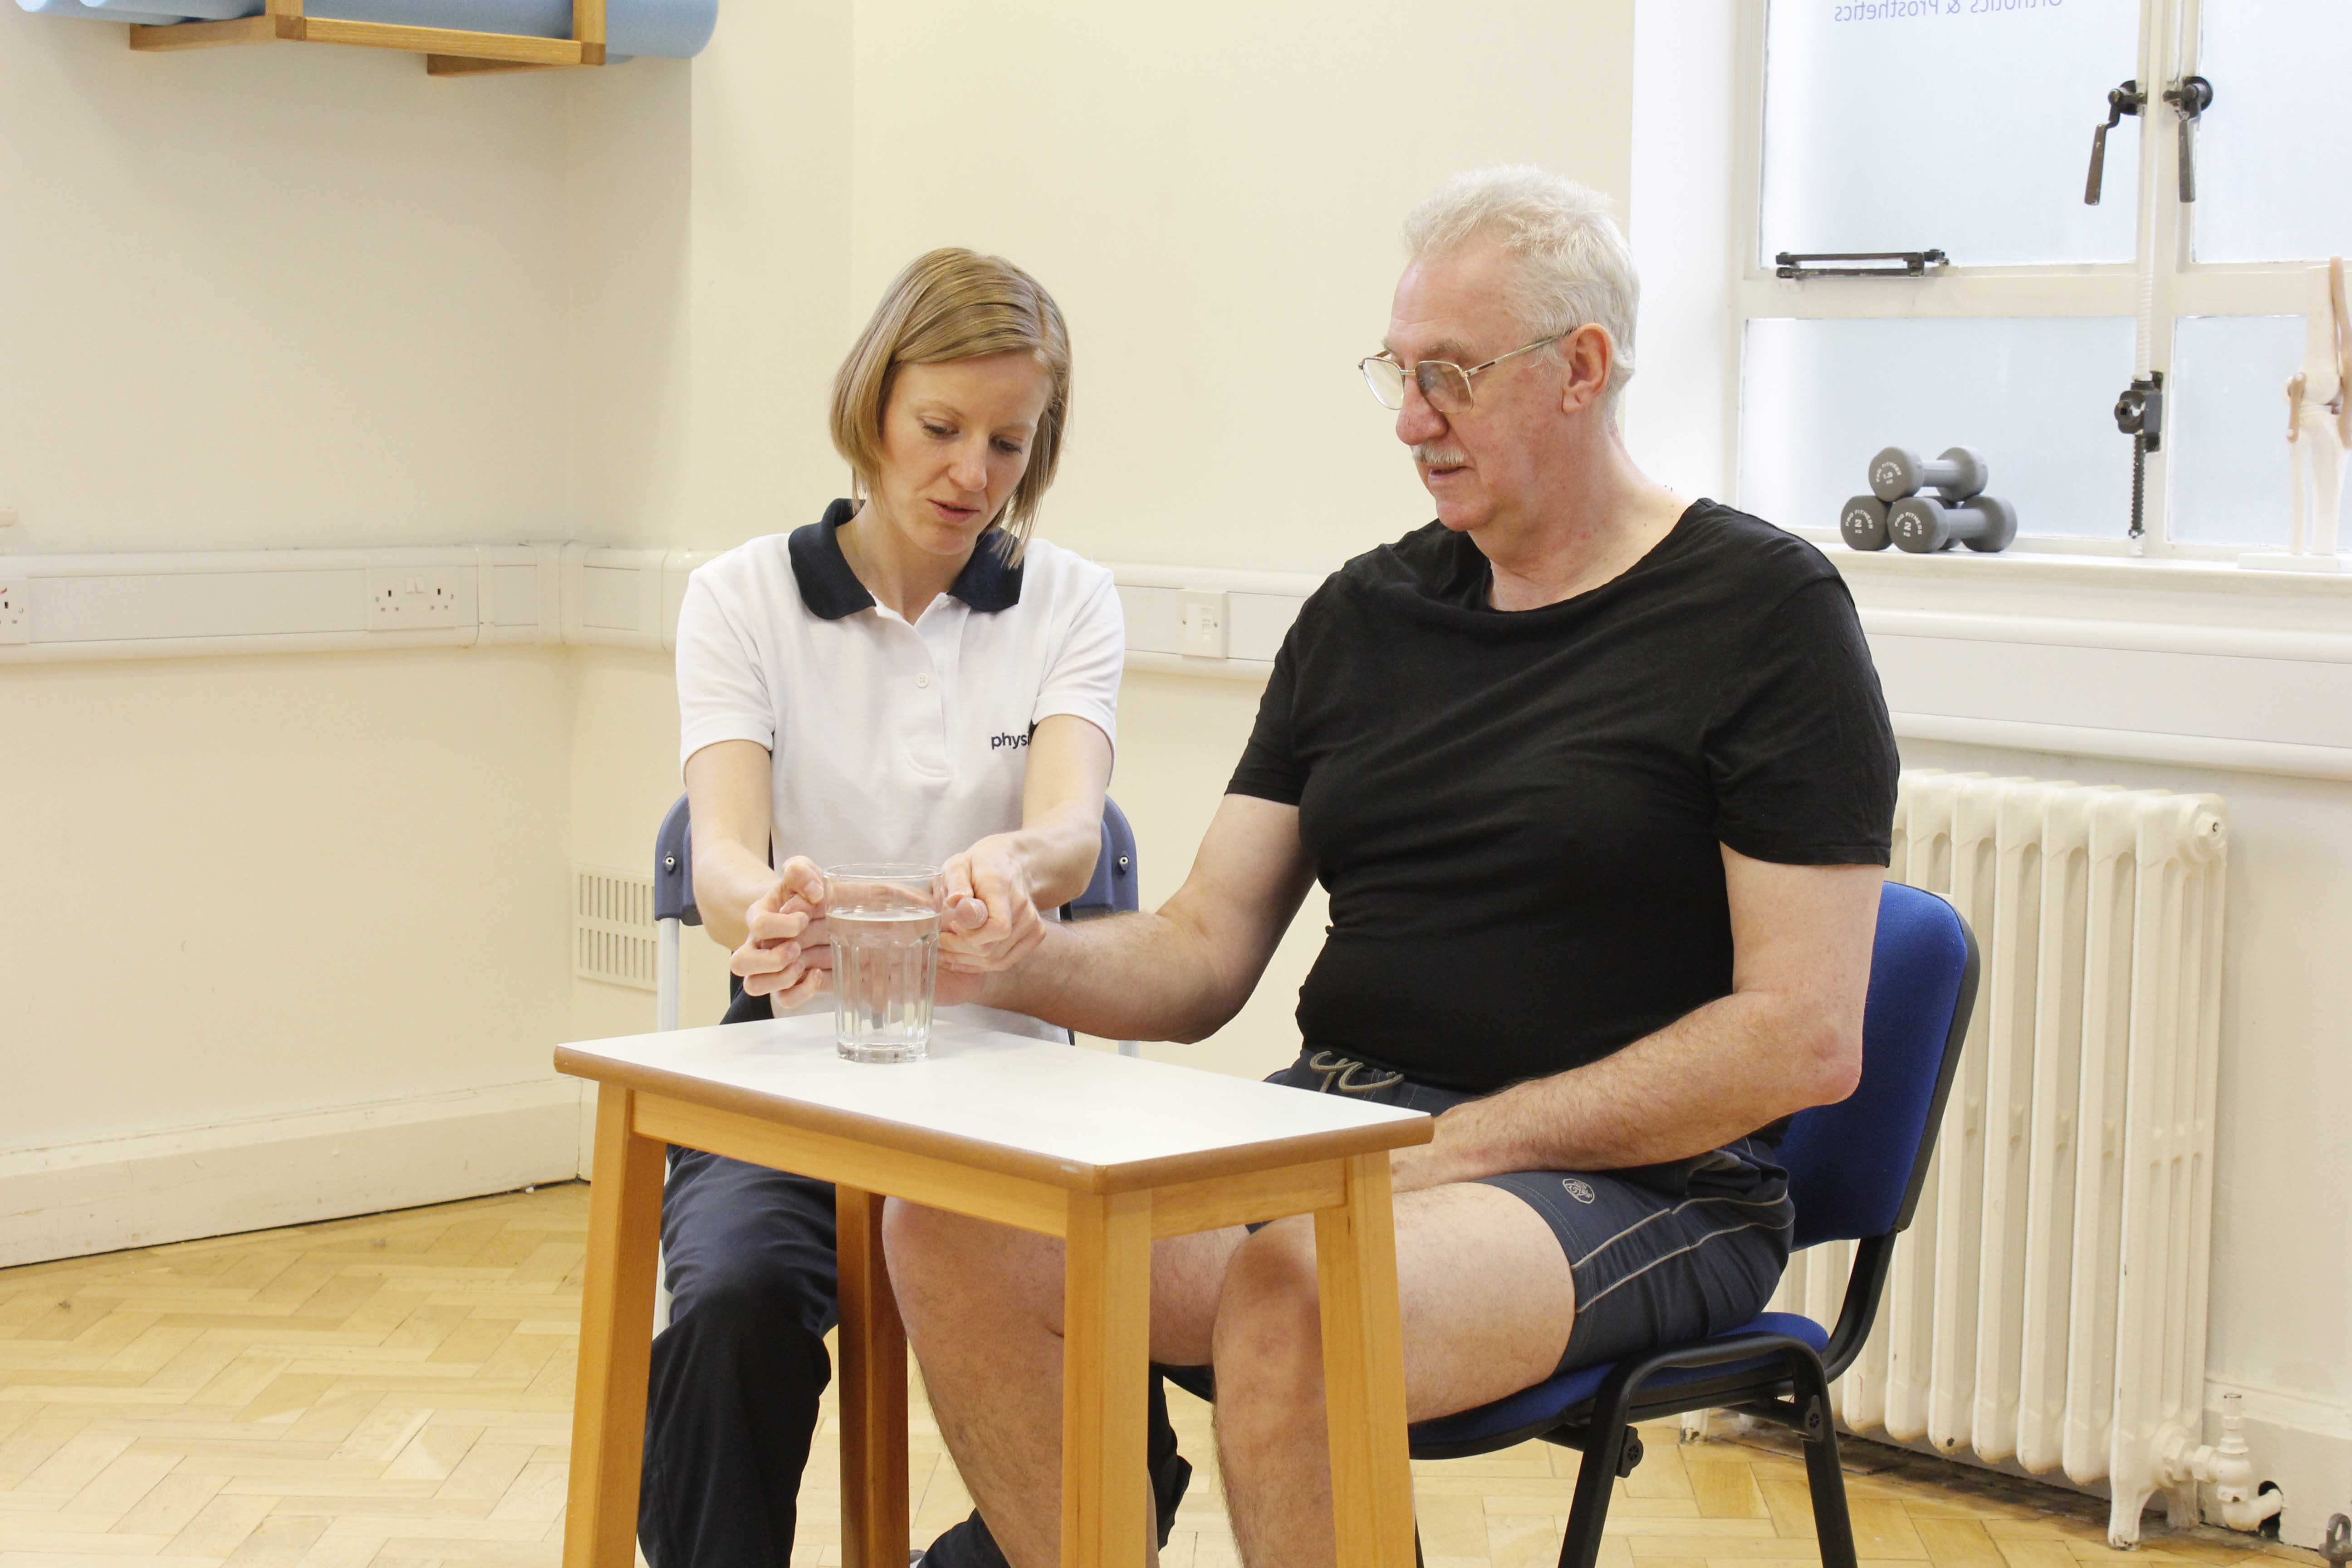 Functional hand exercises assisted by specialist physiotherapist